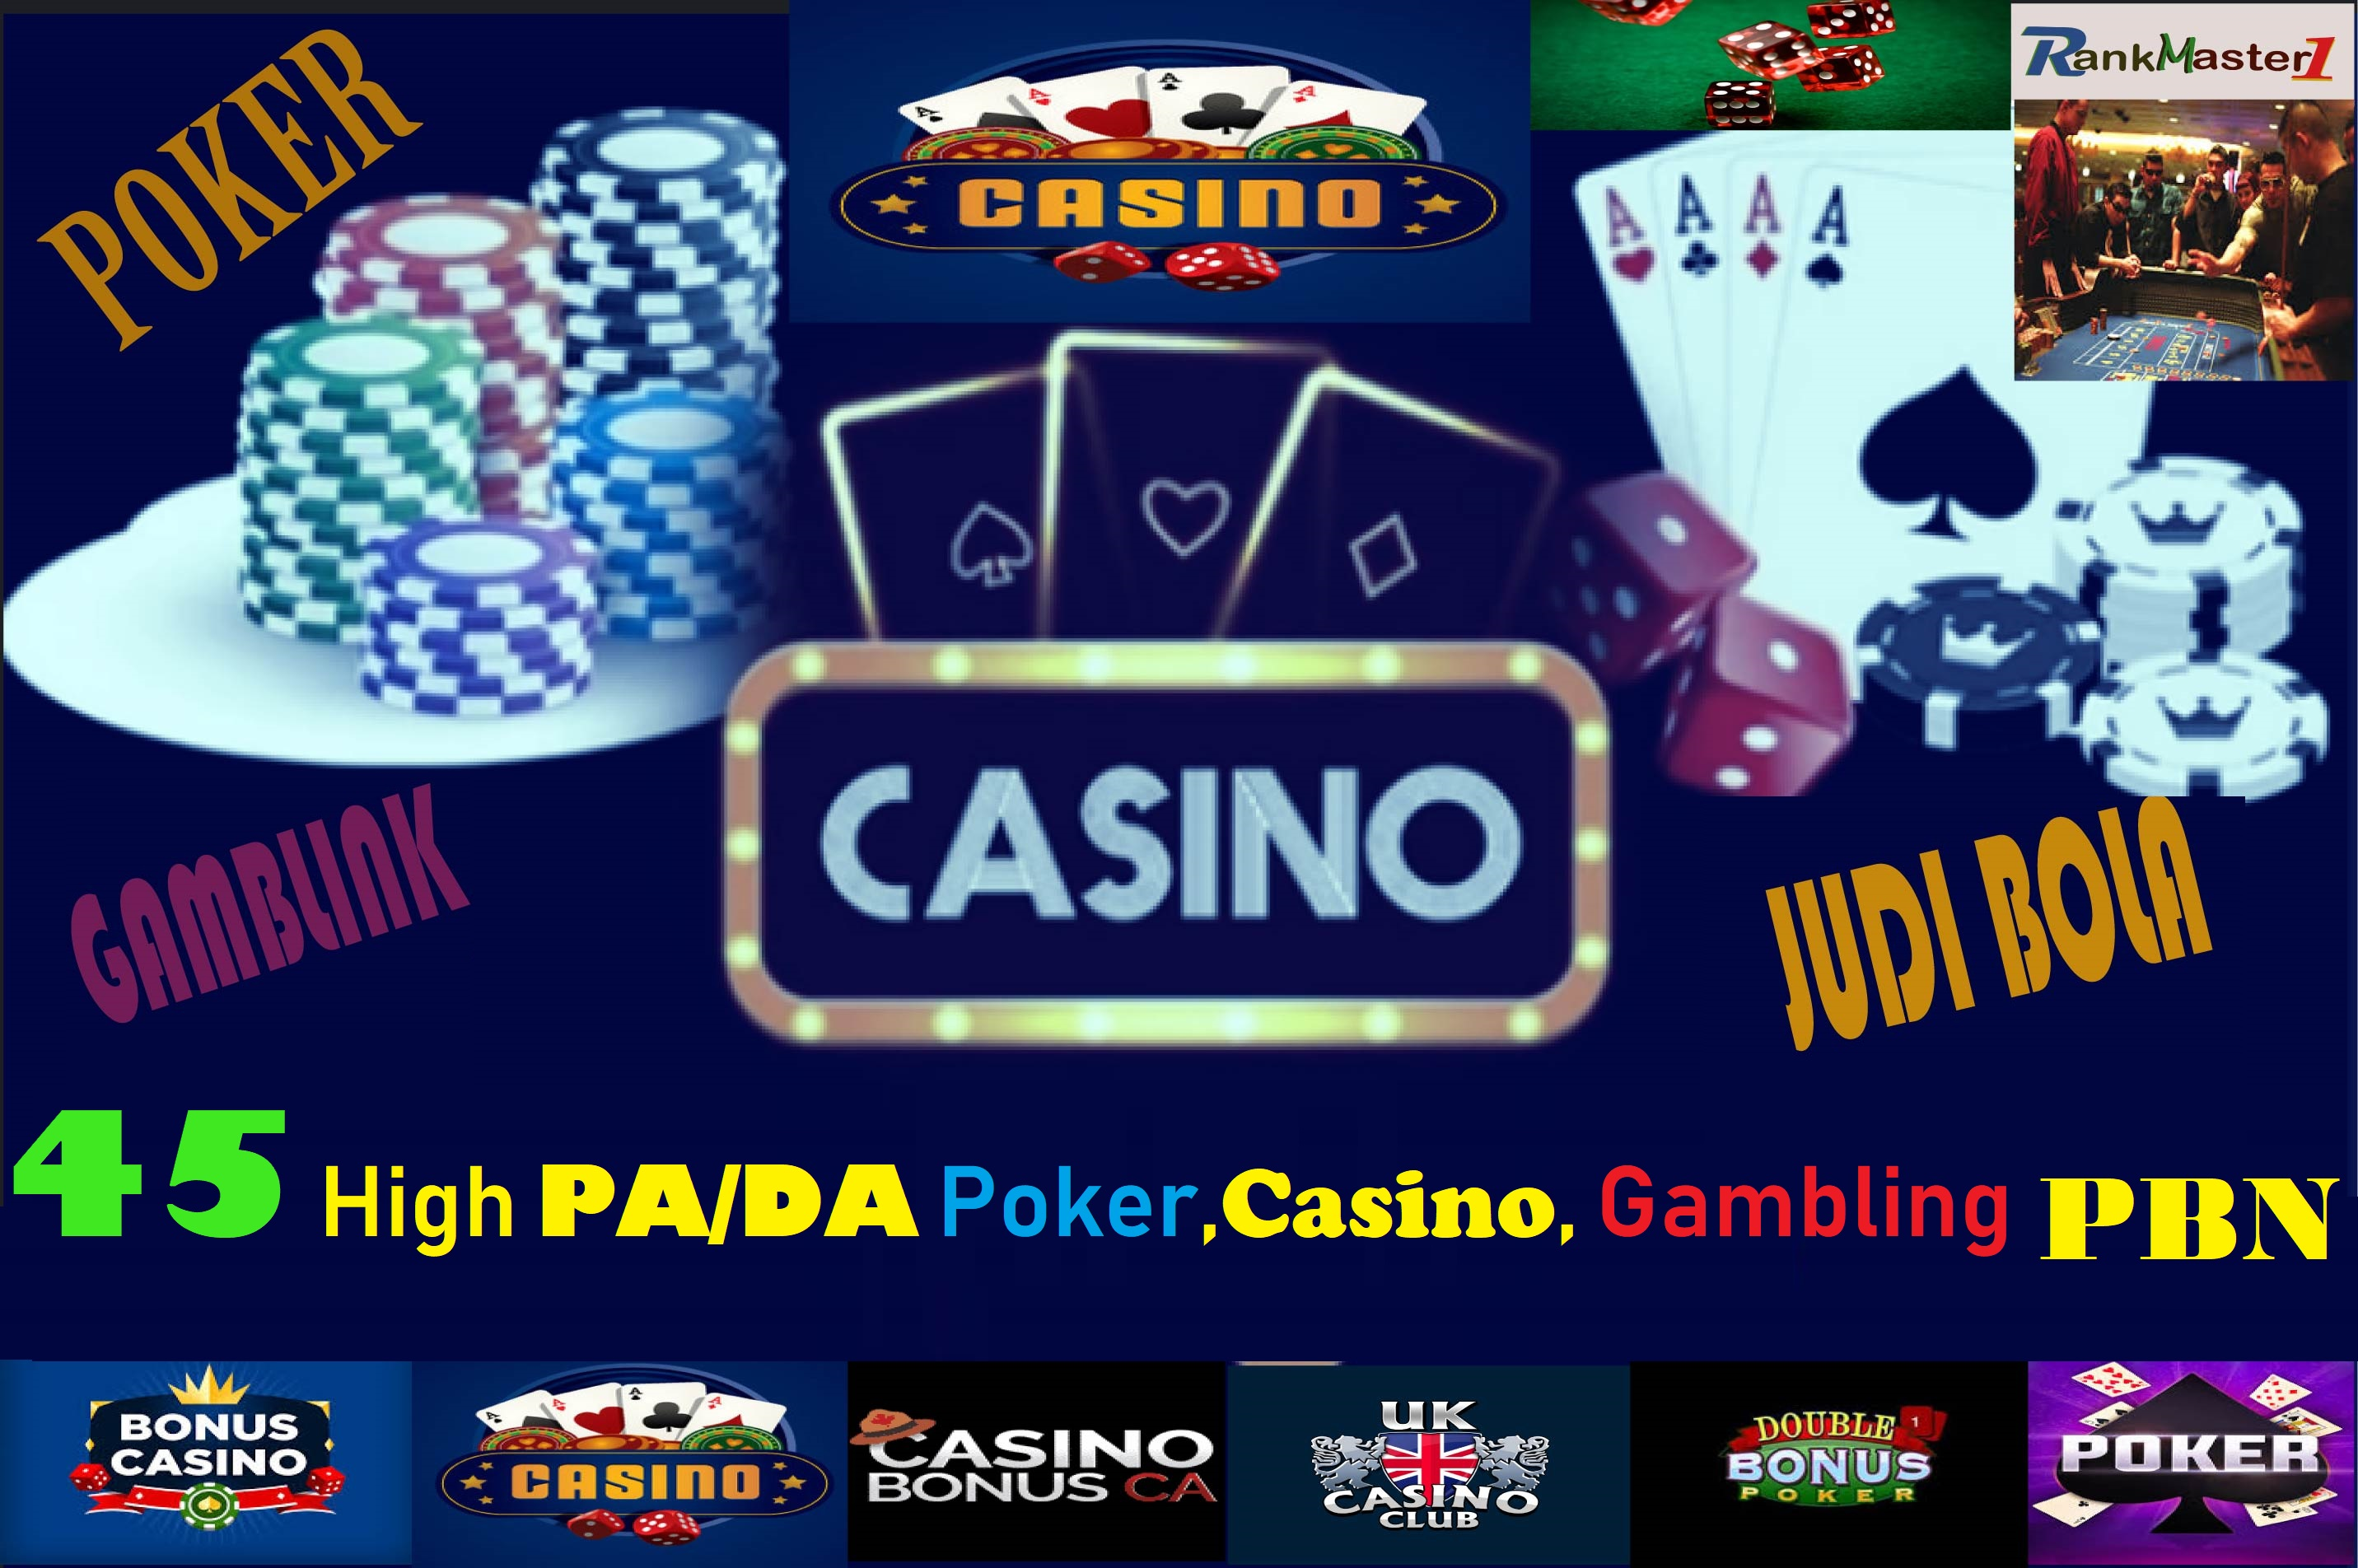 45 Powerful PA 60+ Casino, Gambling, Poker PBN Links